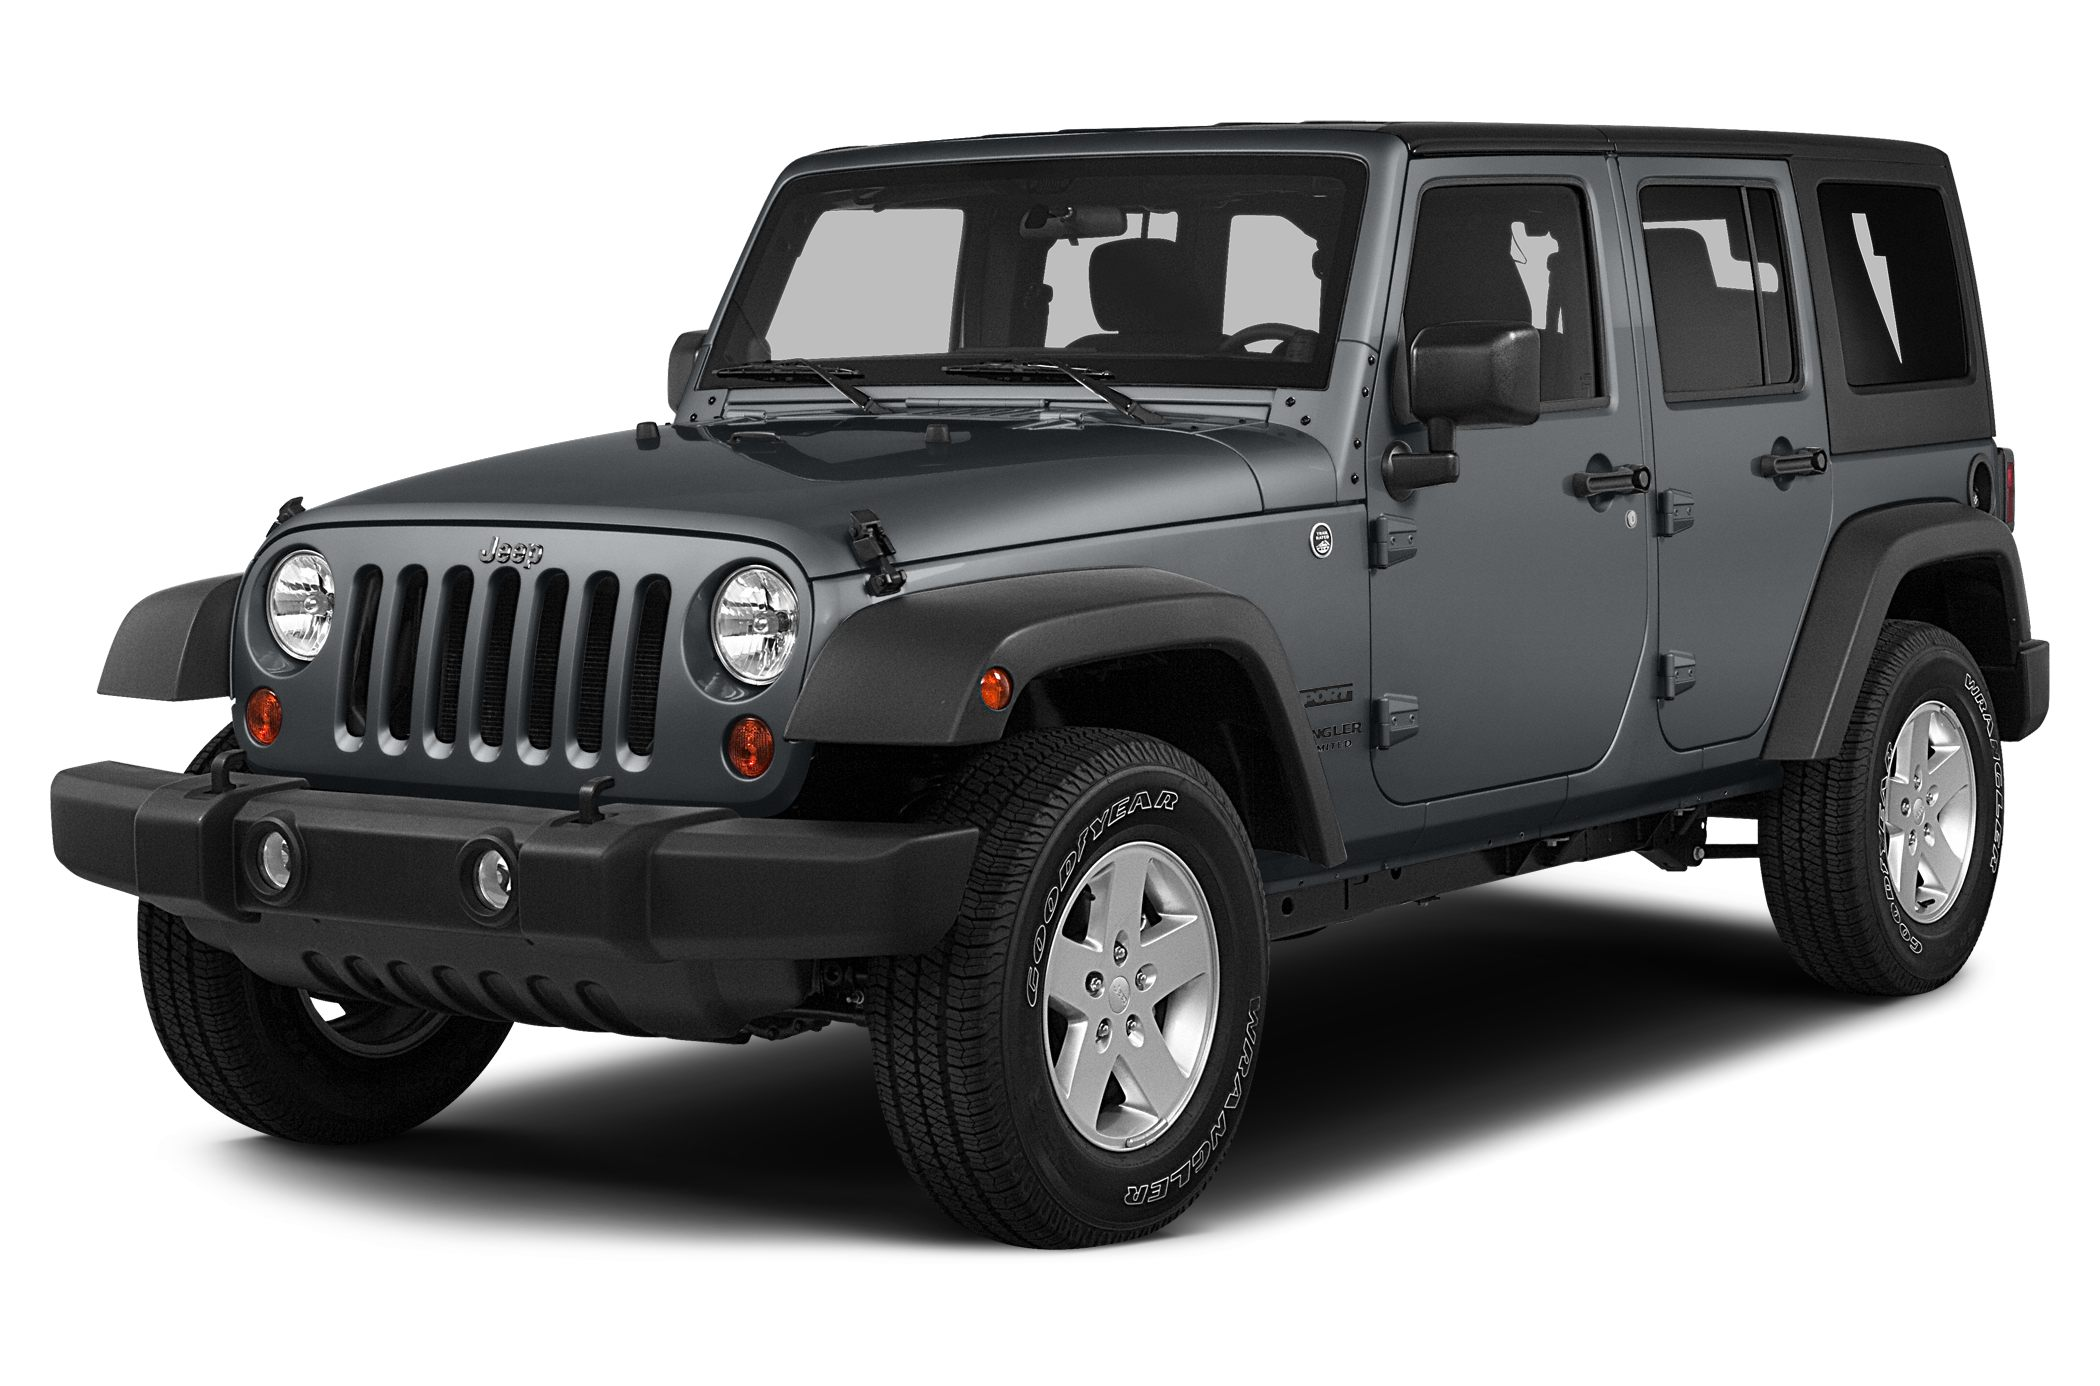 2015 Jeep Wrangler Unlimited Rubicon SUV for sale in Eugene for $38,990 with 4 miles.